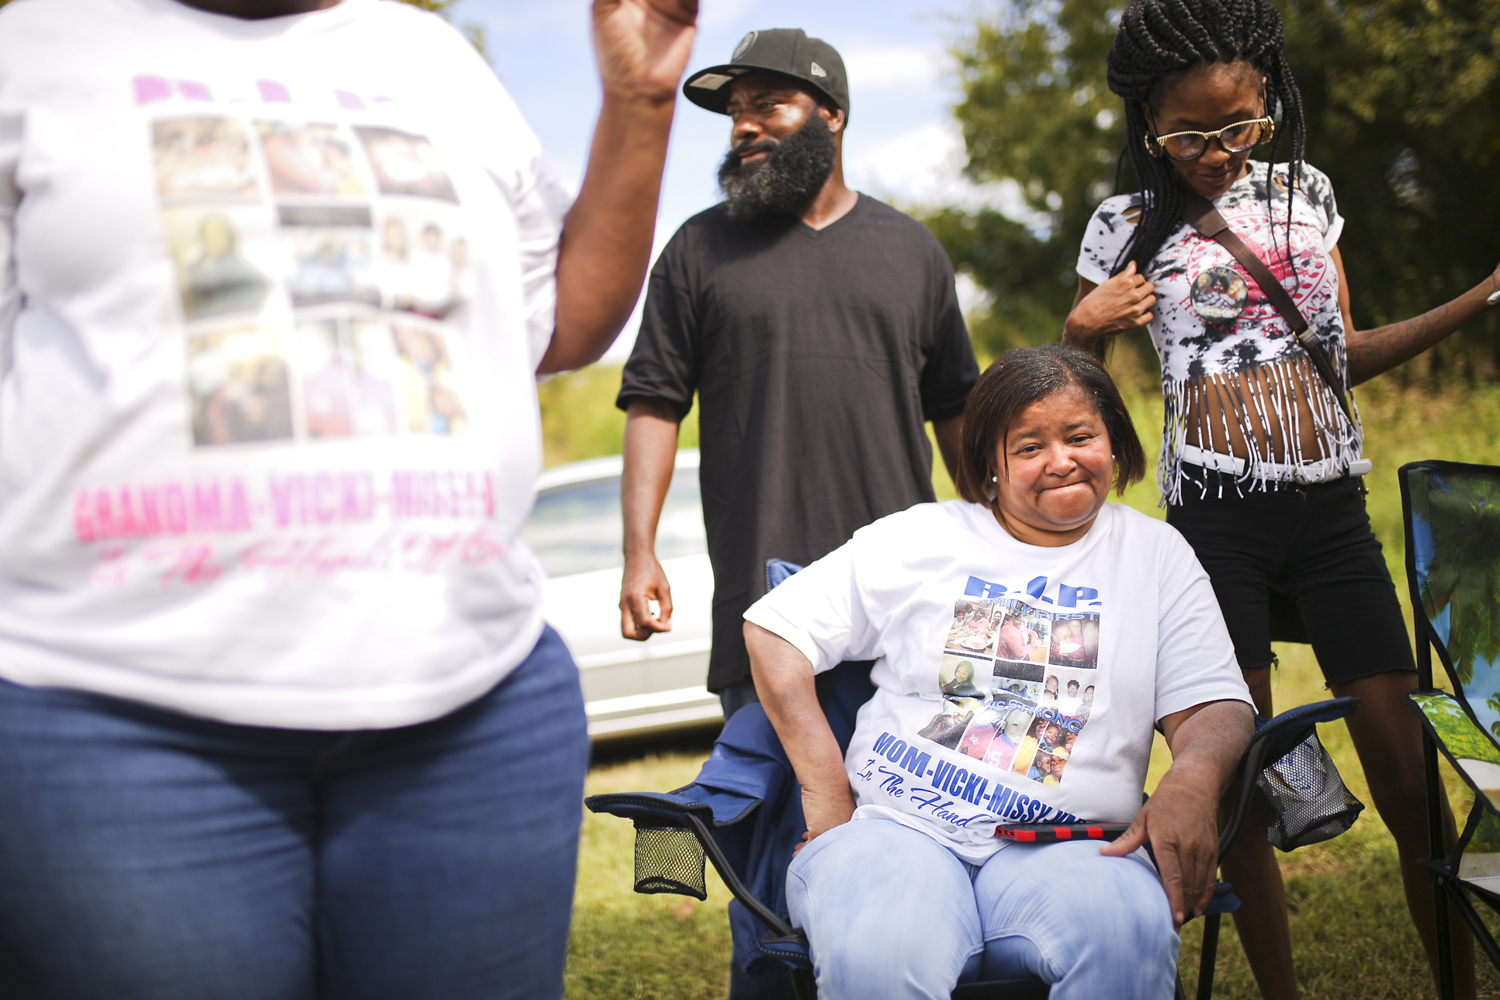 """Valerie Chavis-Jones, center, whose mother Pauline Wilkins and sister Vicki Ansar were killed along with two others in a quadruple murder in 2014, is sourrounded by family and friends on the site of Wilkins' former home where they were killed. Chavis-Jones and others gathered there on the afternoon following a jury's verdict finding their family member's killer guilty on all 10 counts of murder. After three years, """"we needed closure,"""" said Chavis-Jones. """"We feel that they are here with us."""" [Scott P. Yates/progress-index.com]"""